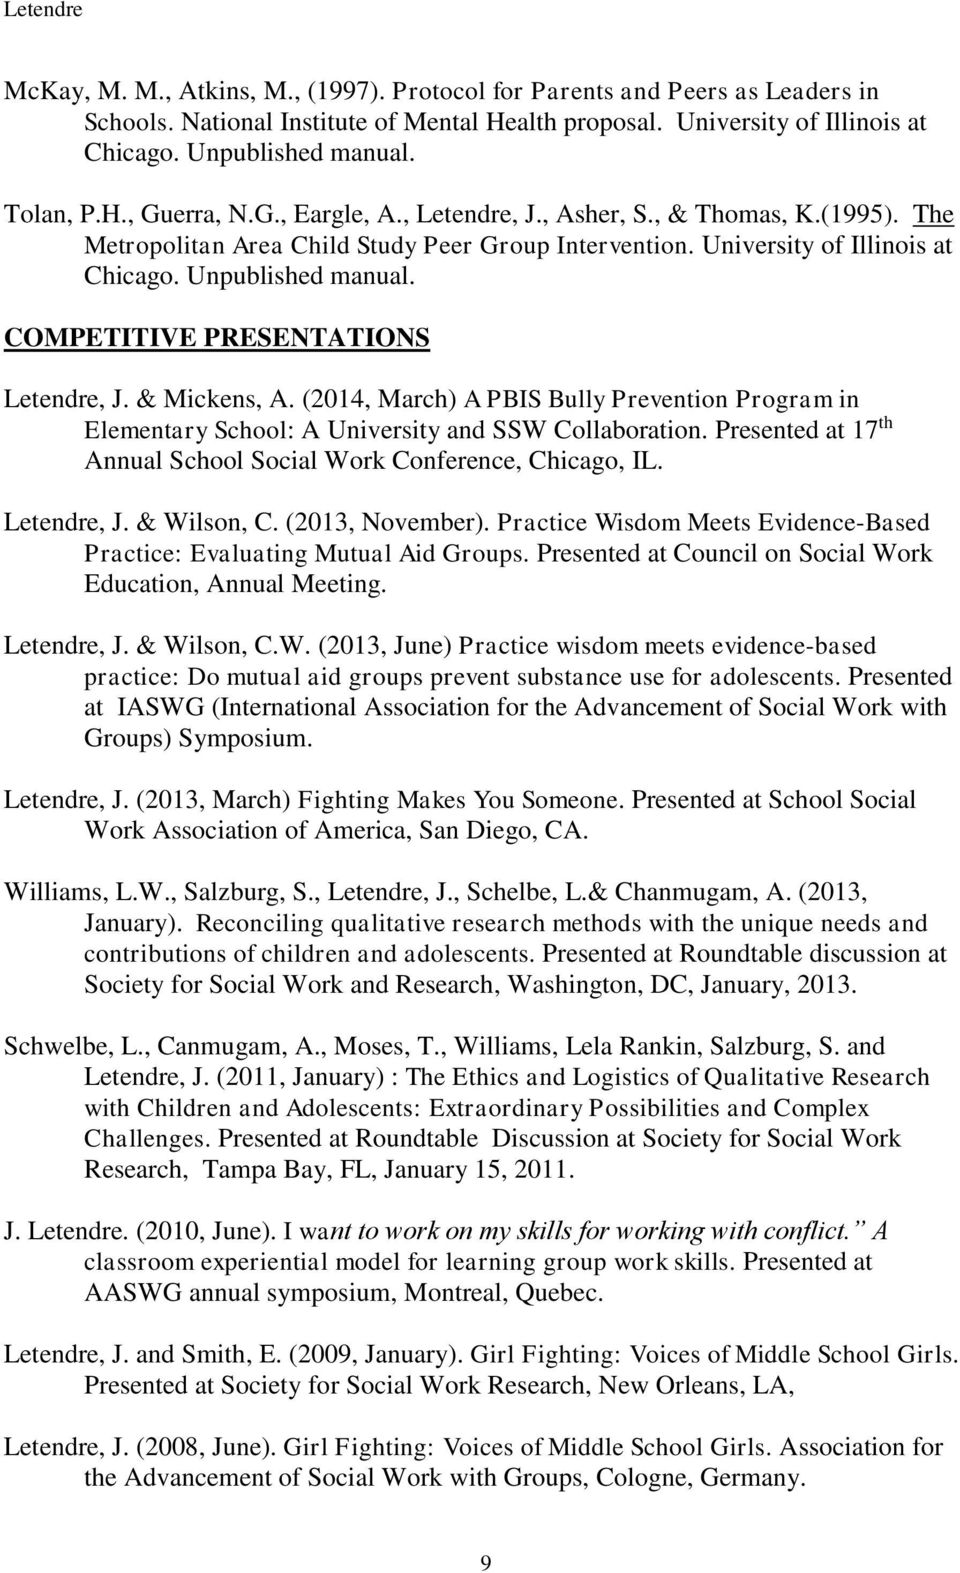 COMPETITIVE PRESENTATIONS Letendre, J. & Mickens, A. (2014, March) A PBIS Bully Prevention Program in Elementary School: A University and SSW Collaboration.